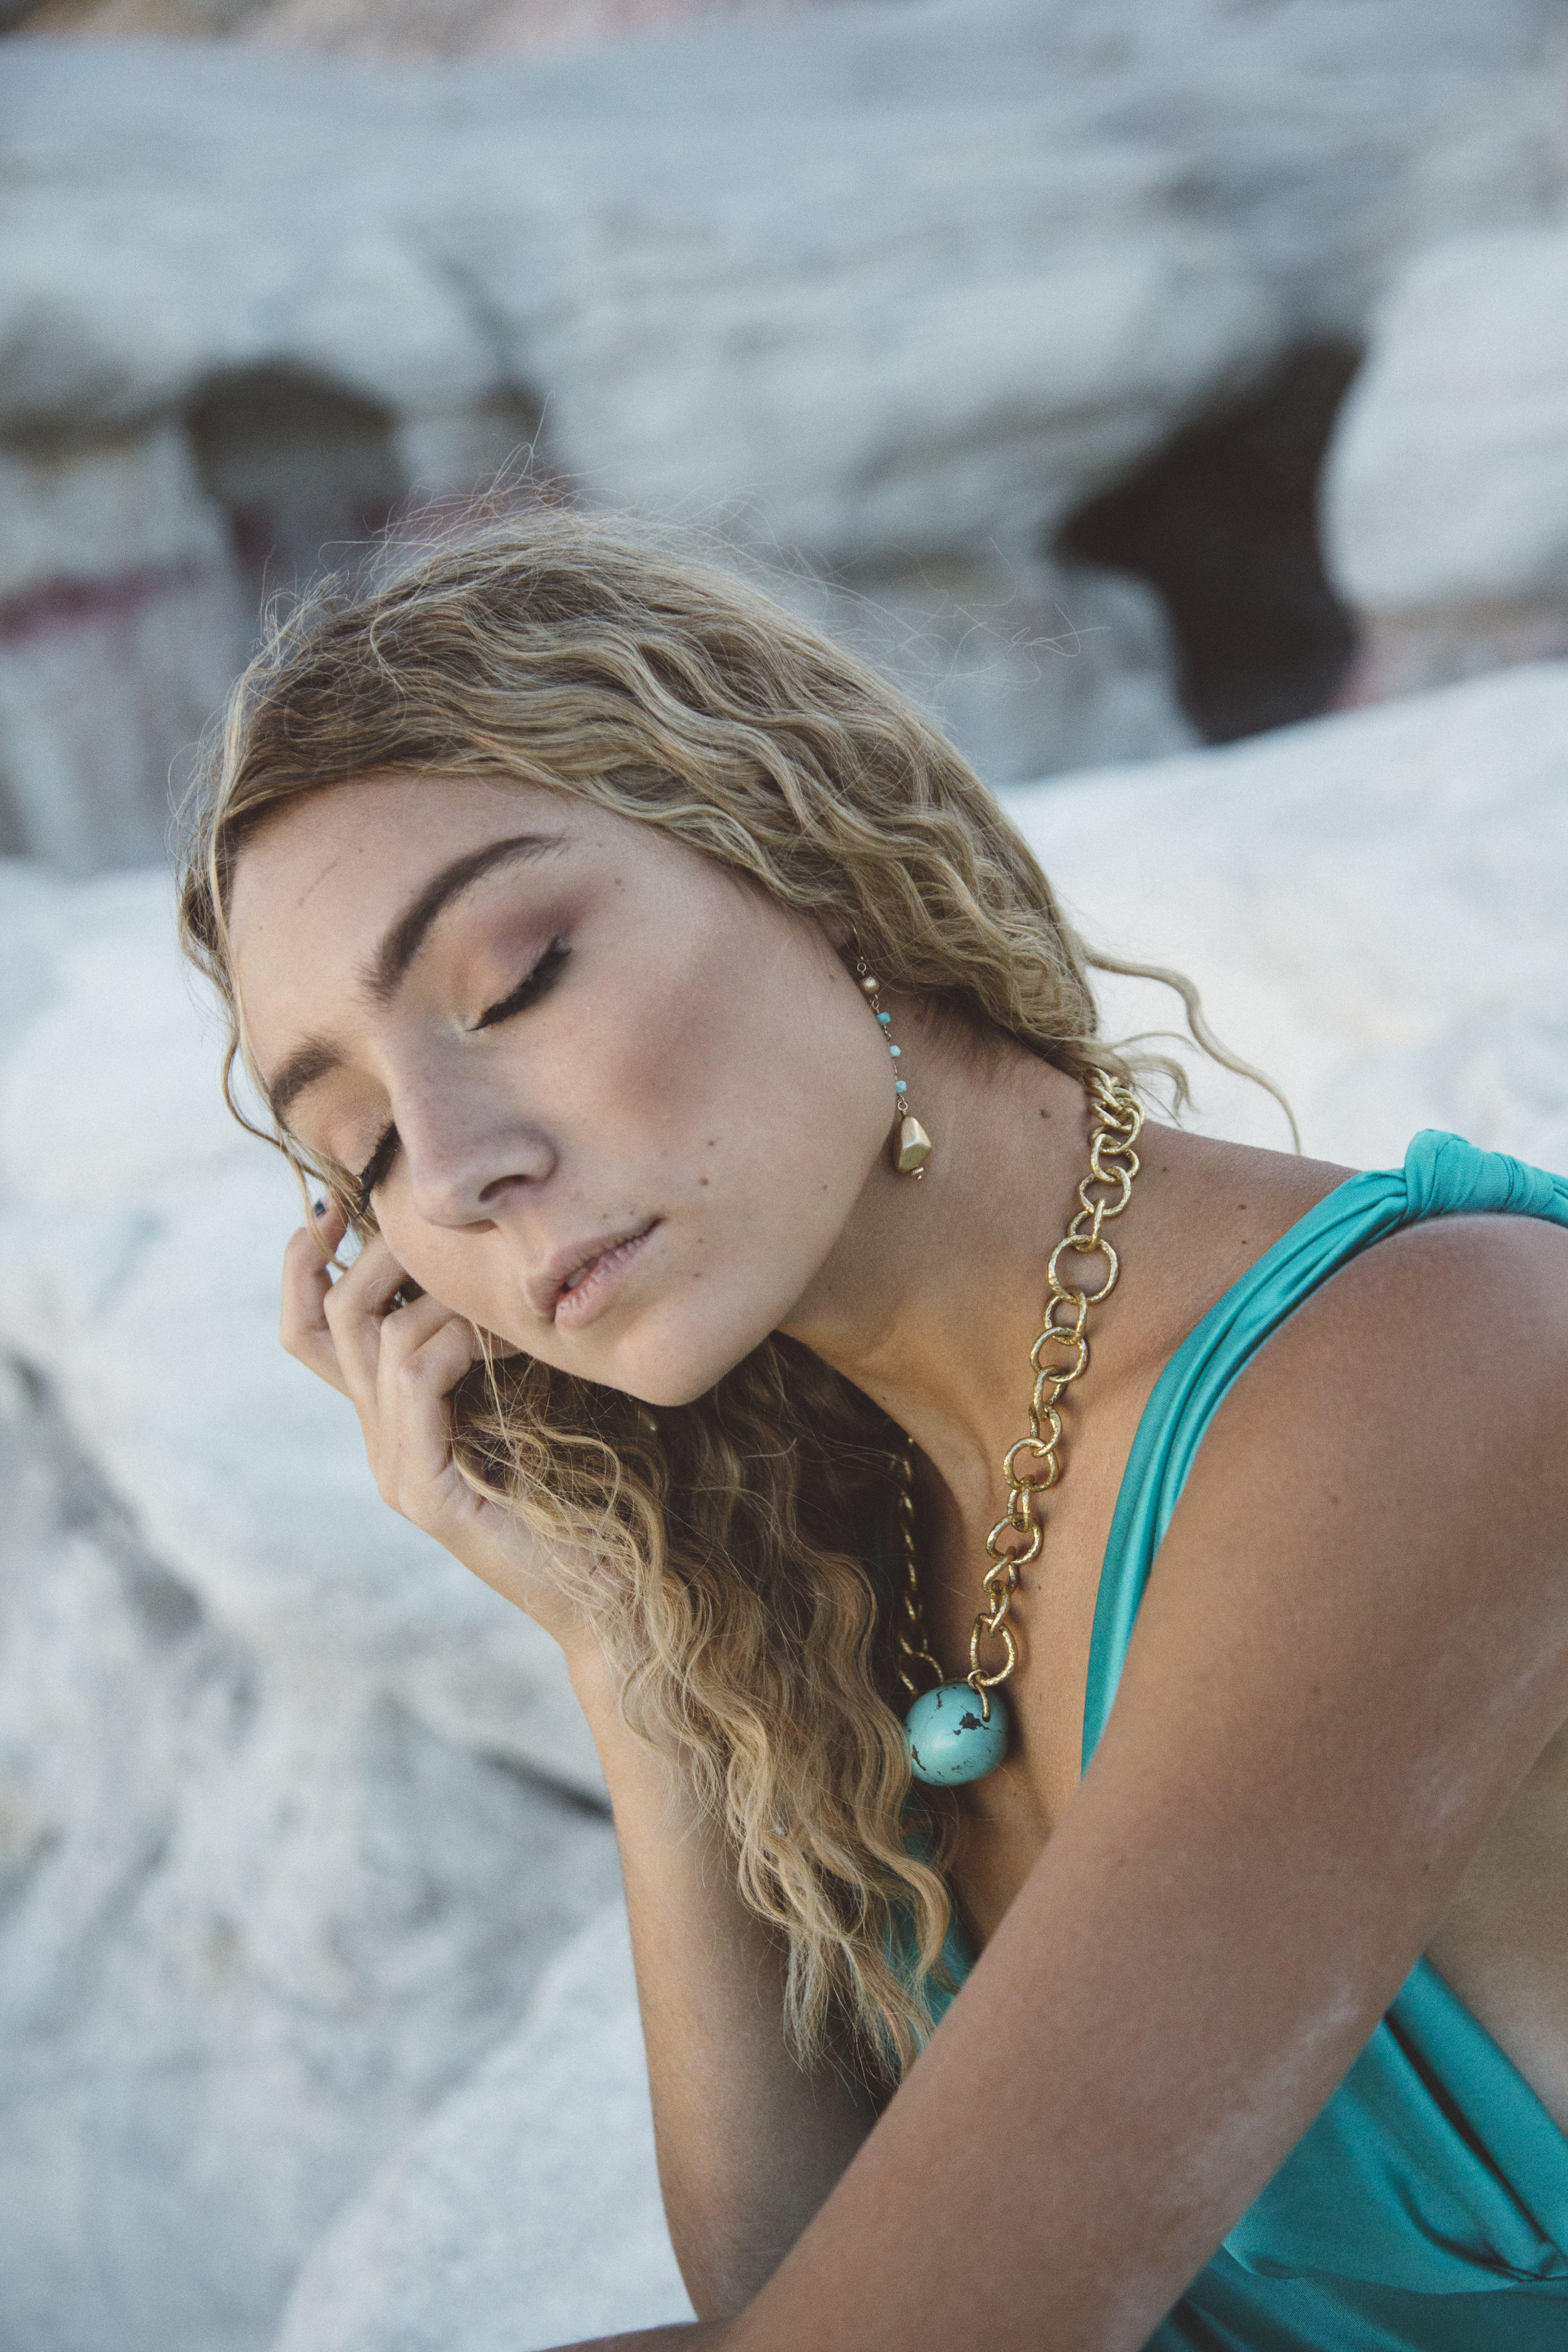 model wearing turquoise with a gold drop pendant earrings